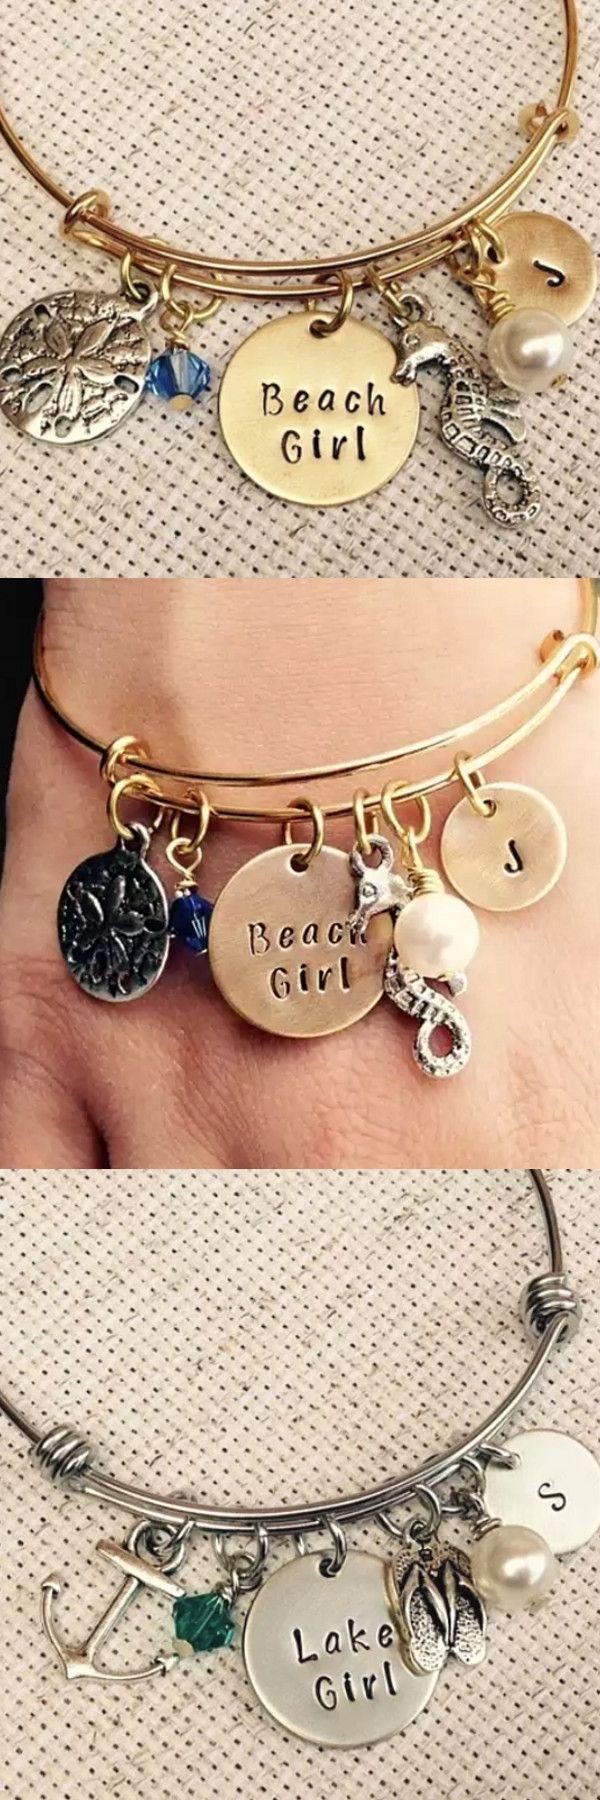 bangle charm elegant size silver available kids daughter adjustable god bangles goddaughter request upon bracelet